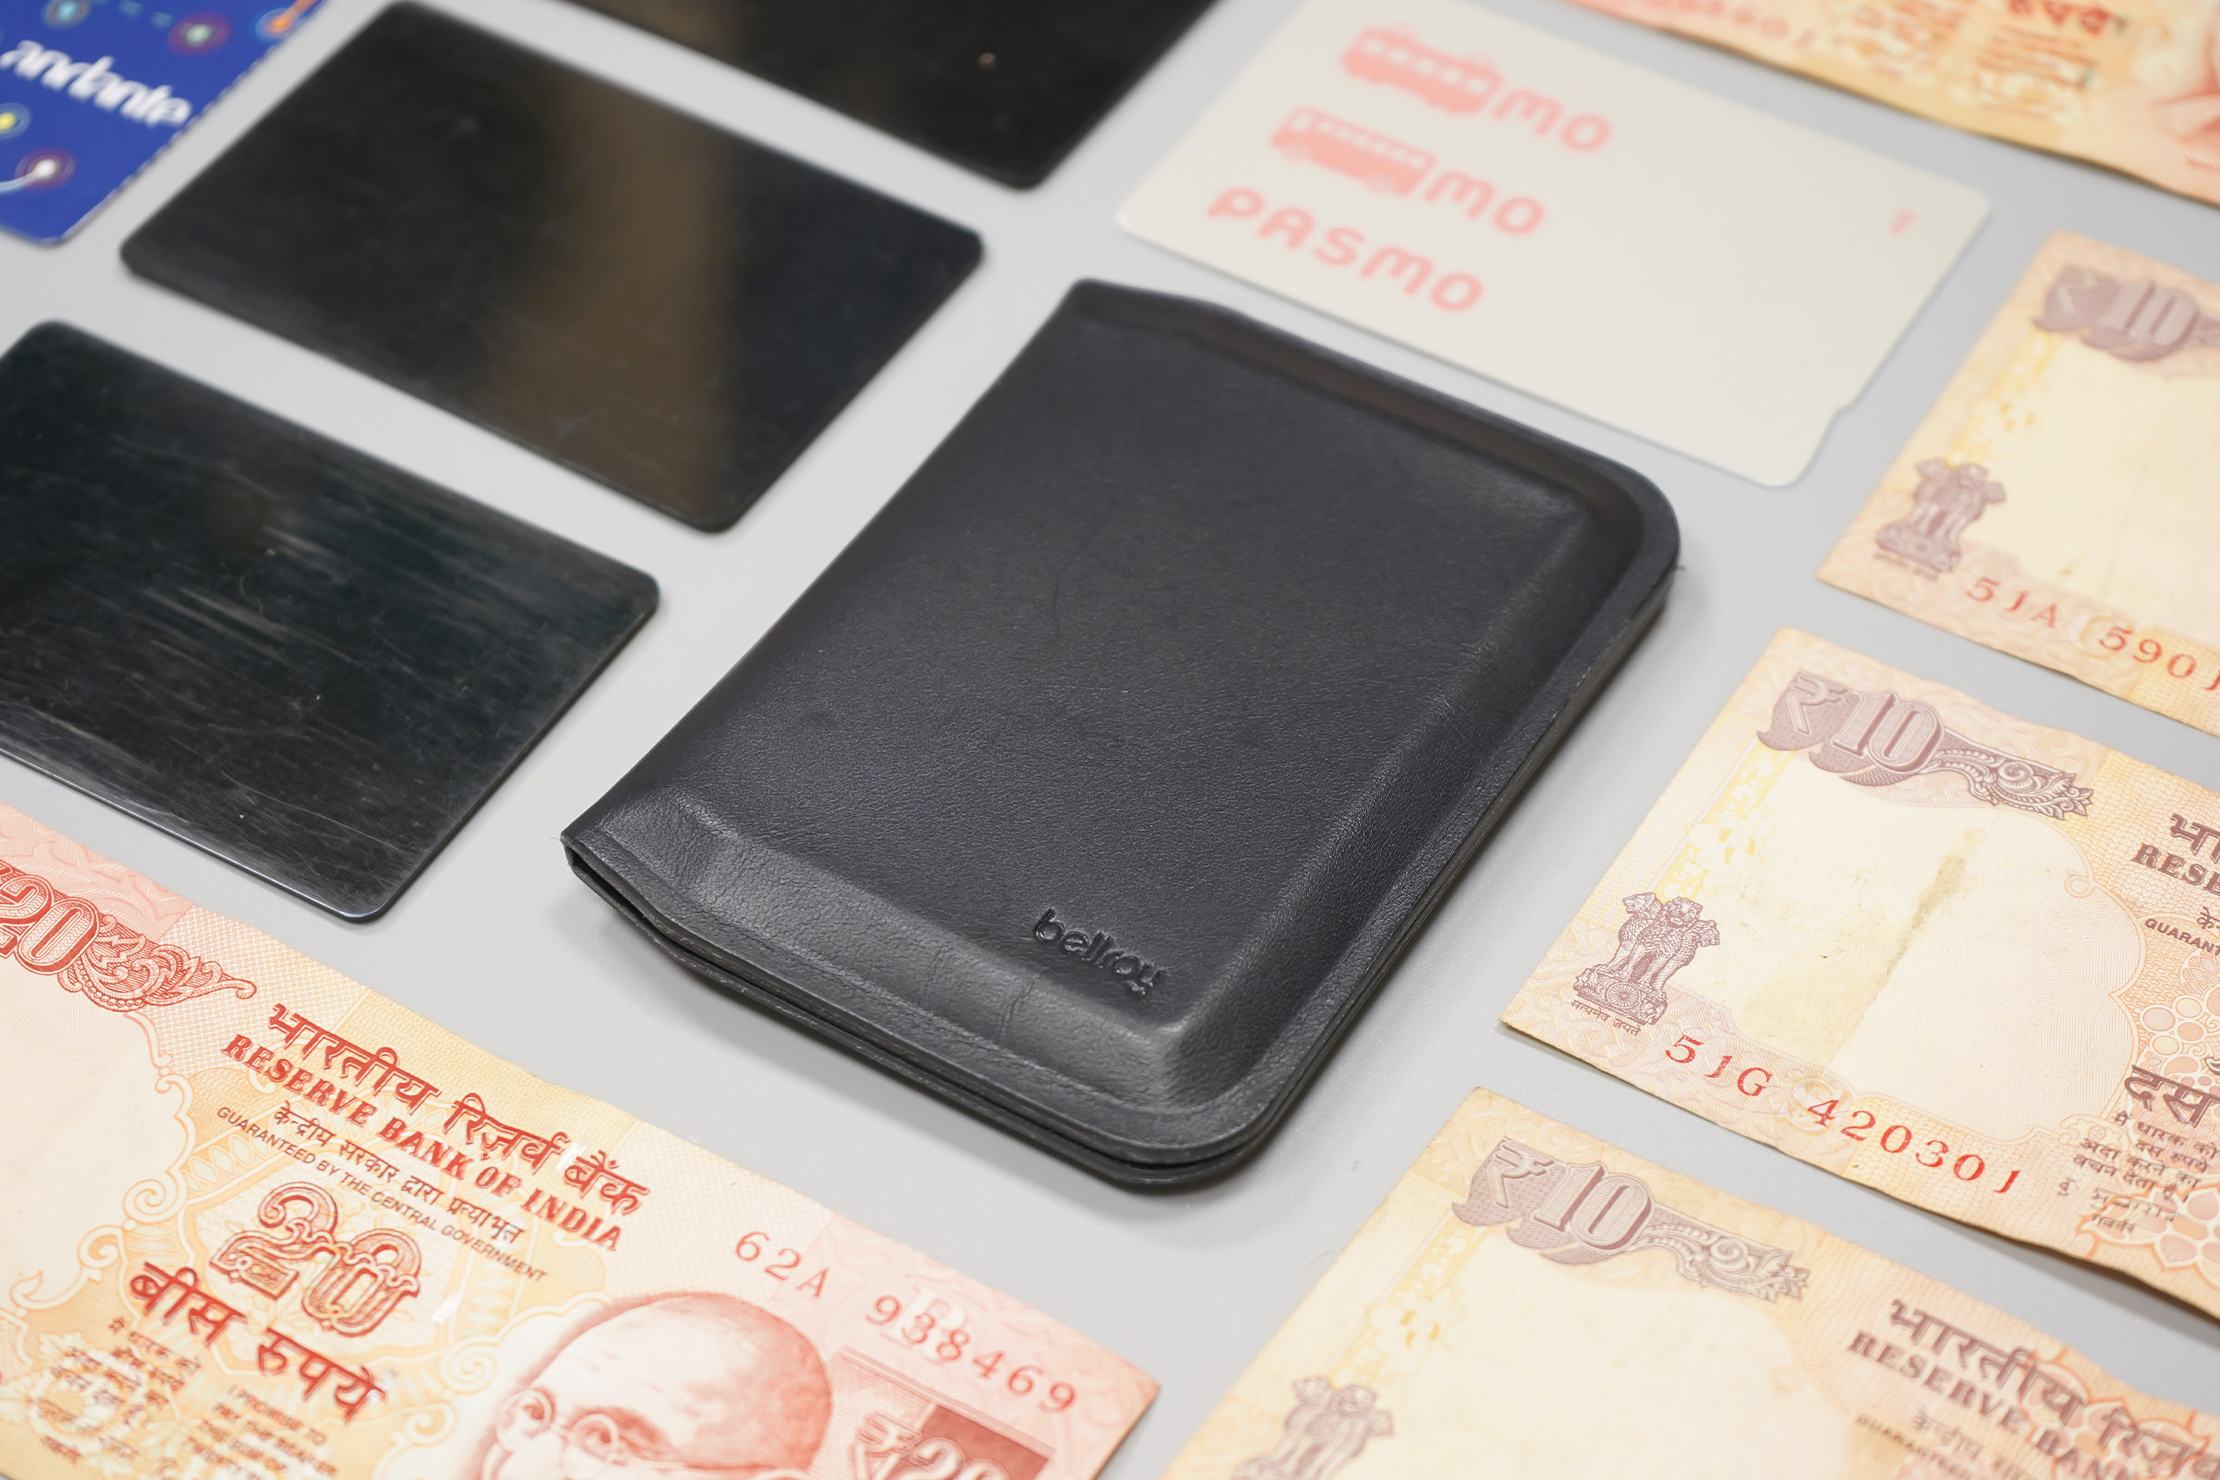 Bellroy Apex Slim Sleeve | The wallet with its contents laid out